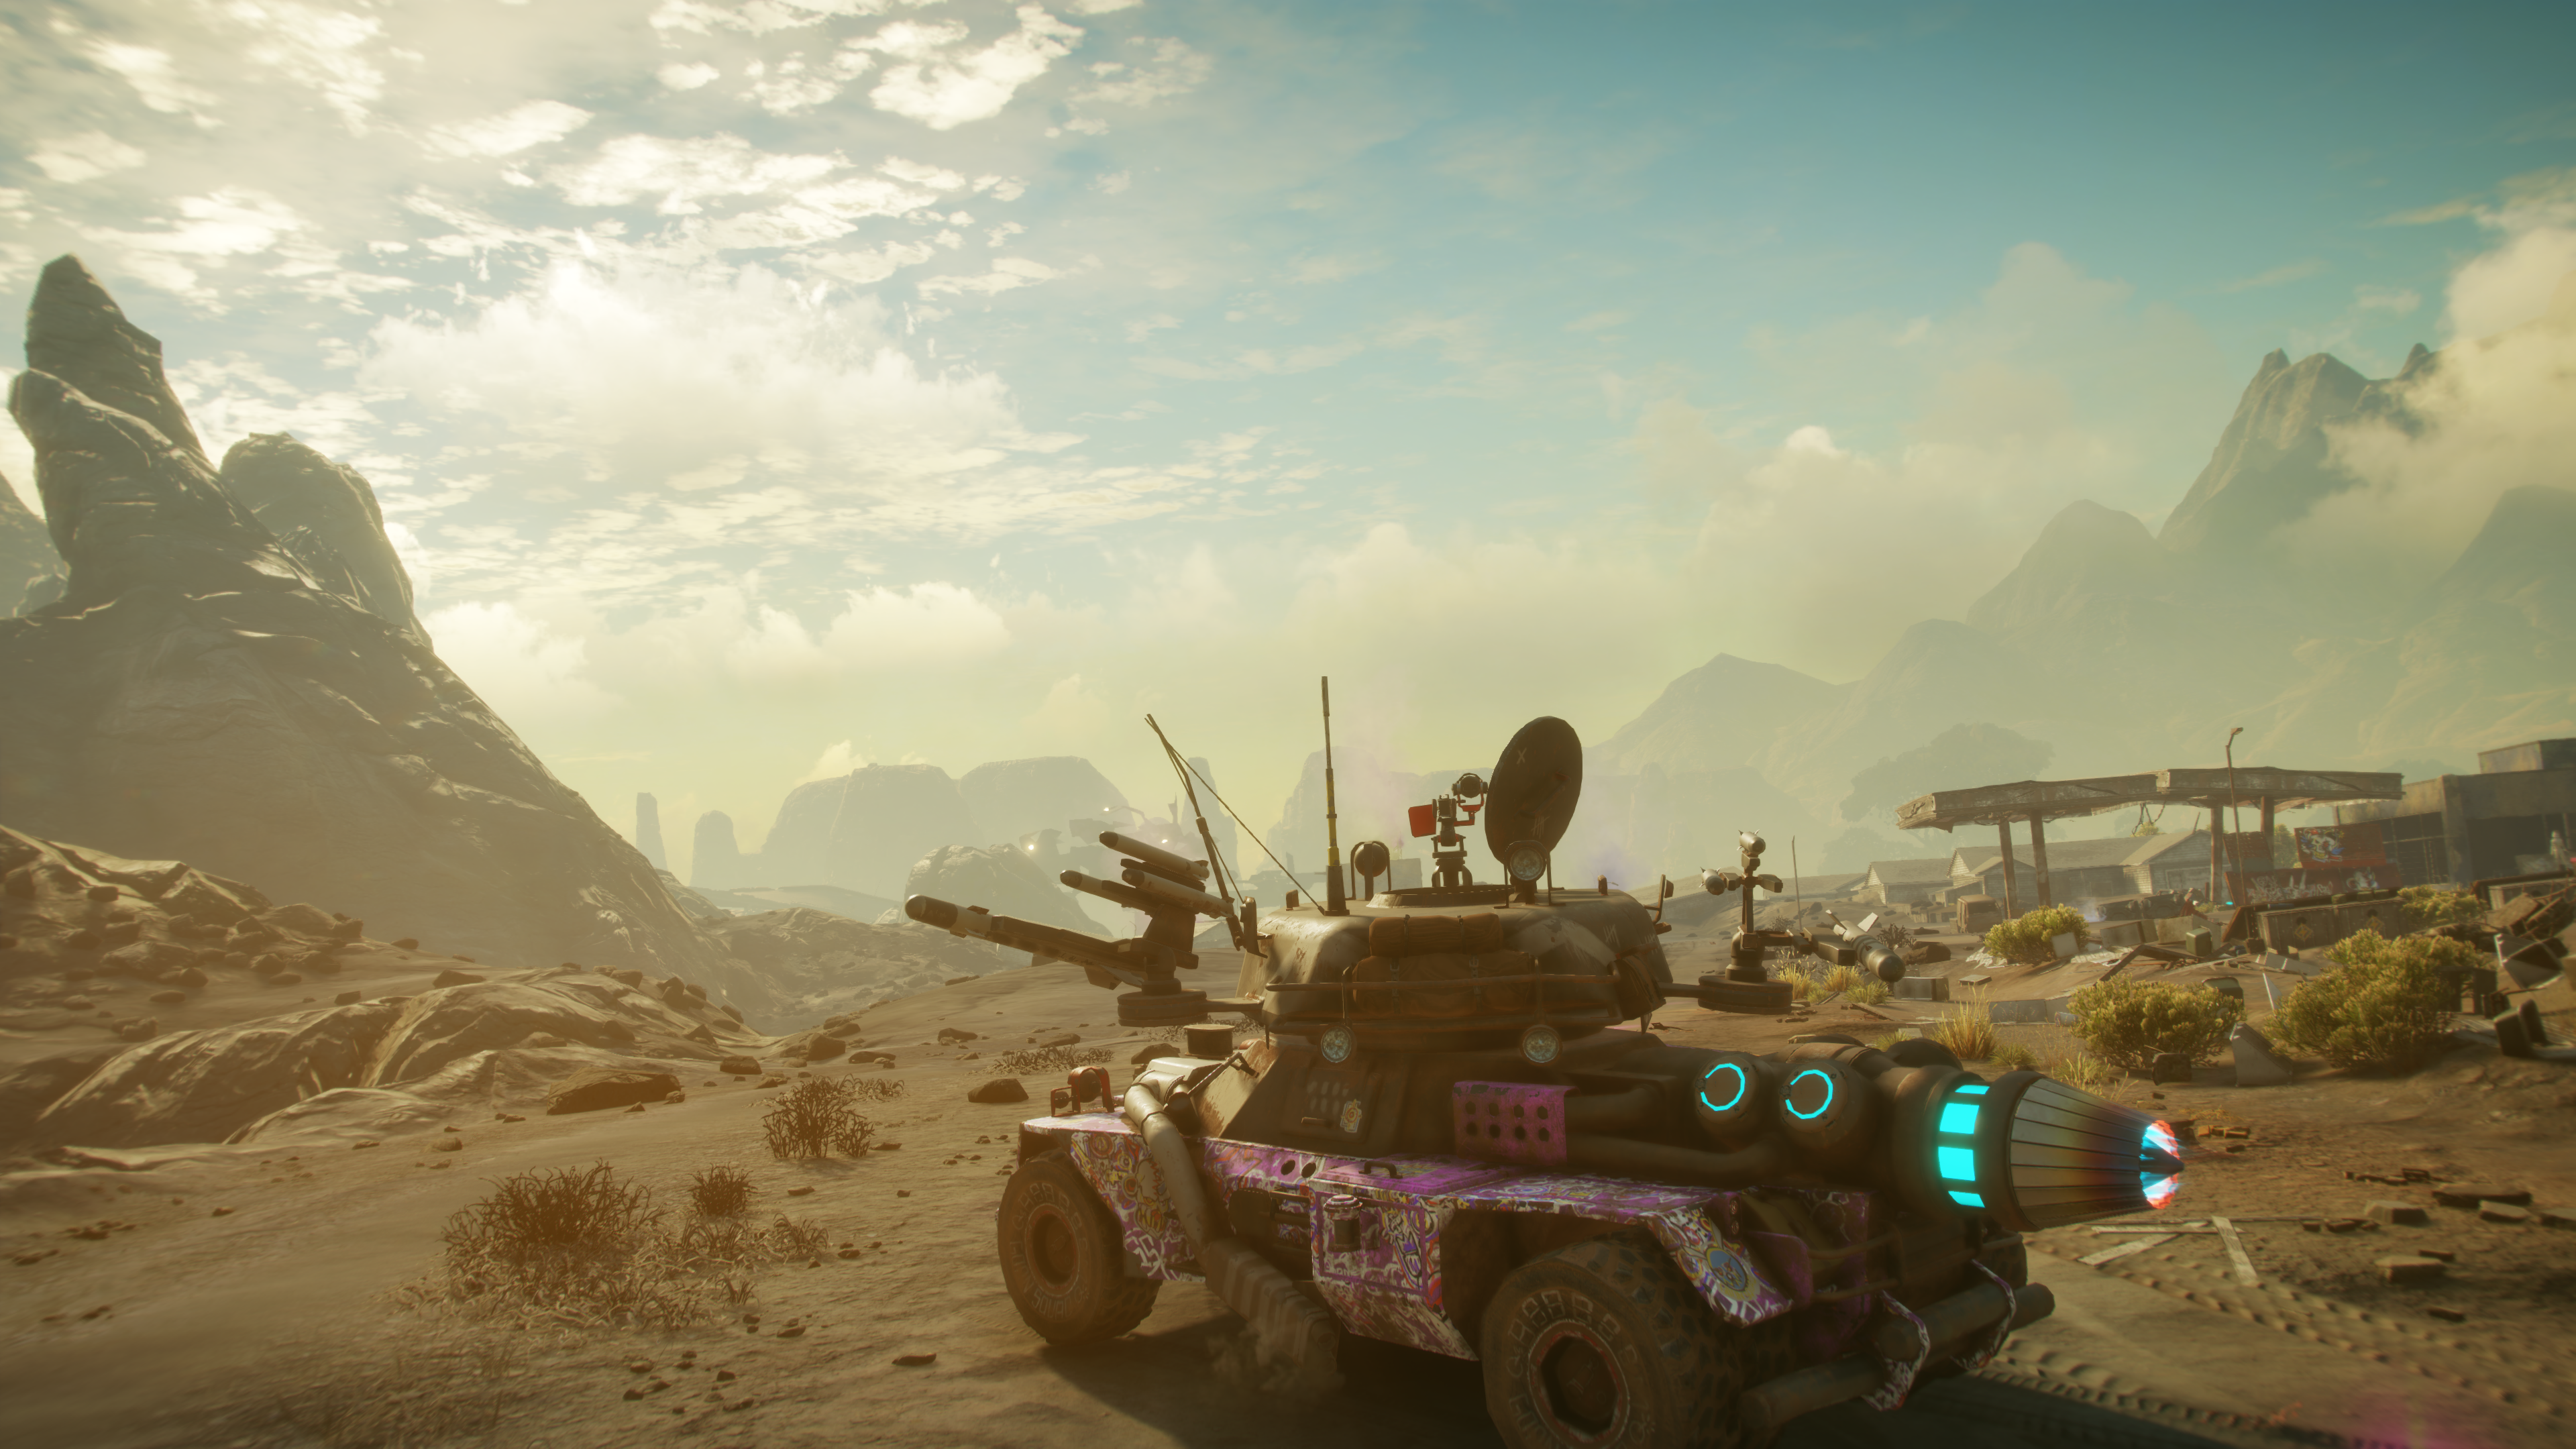 Rage 2' Is 'Doom' Meets 'Mad Max' Meets Mediocrity - VICE